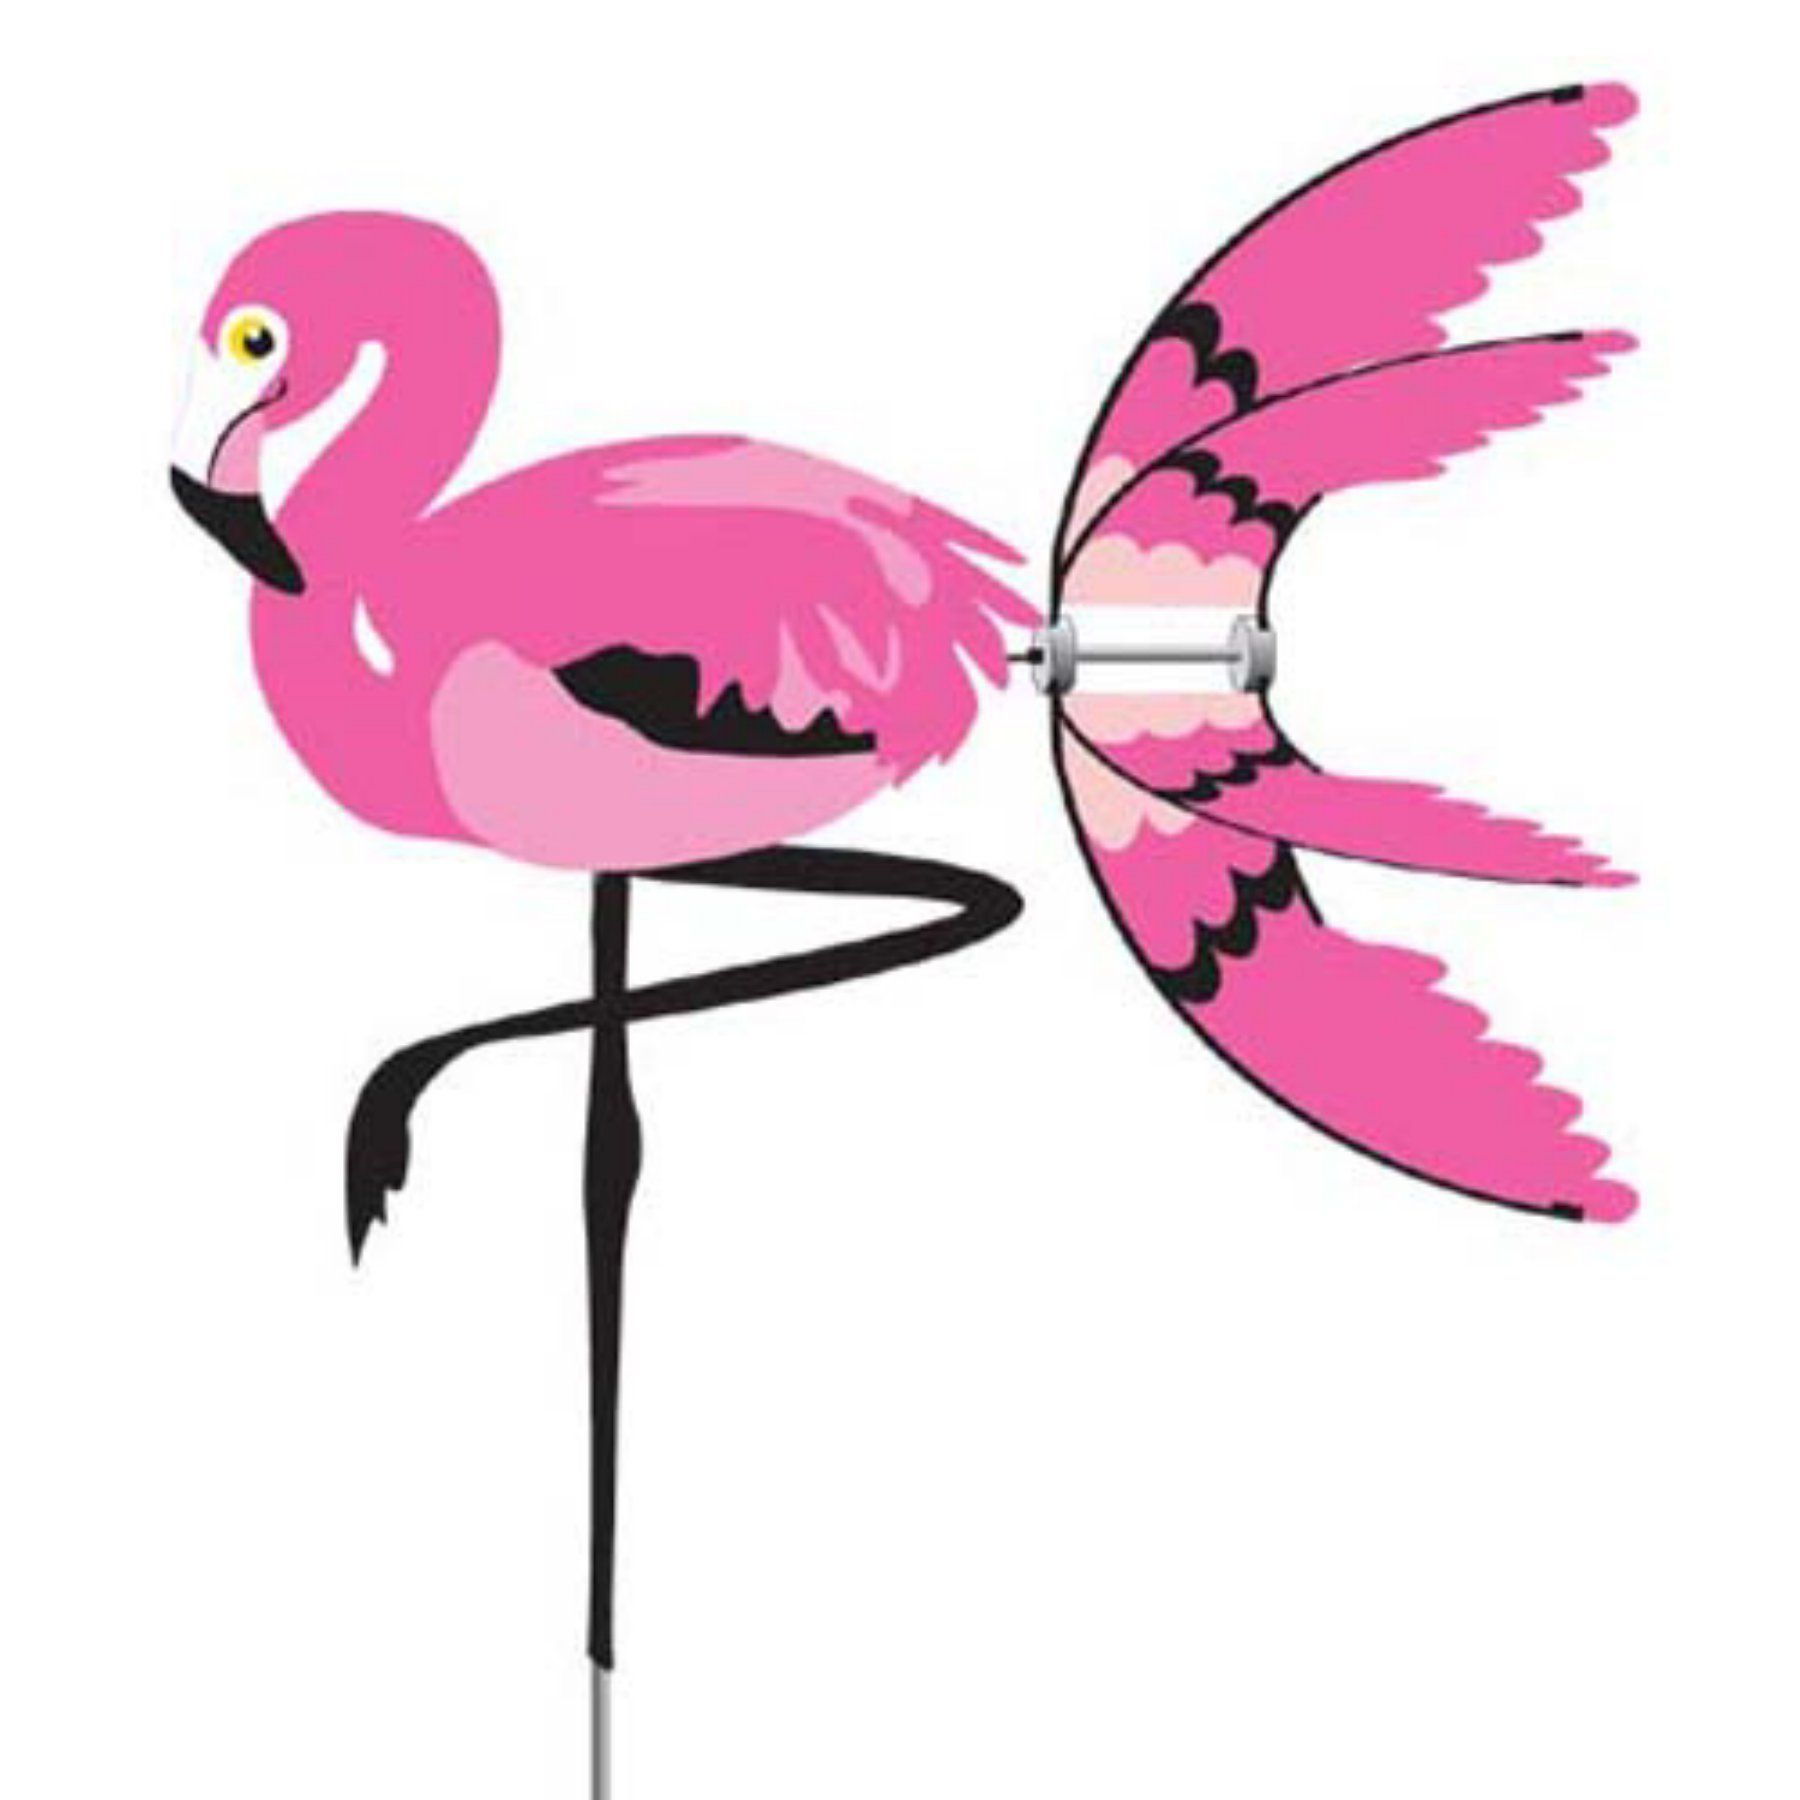 Premier Designs Flamingo Garden Spinner   PD25364